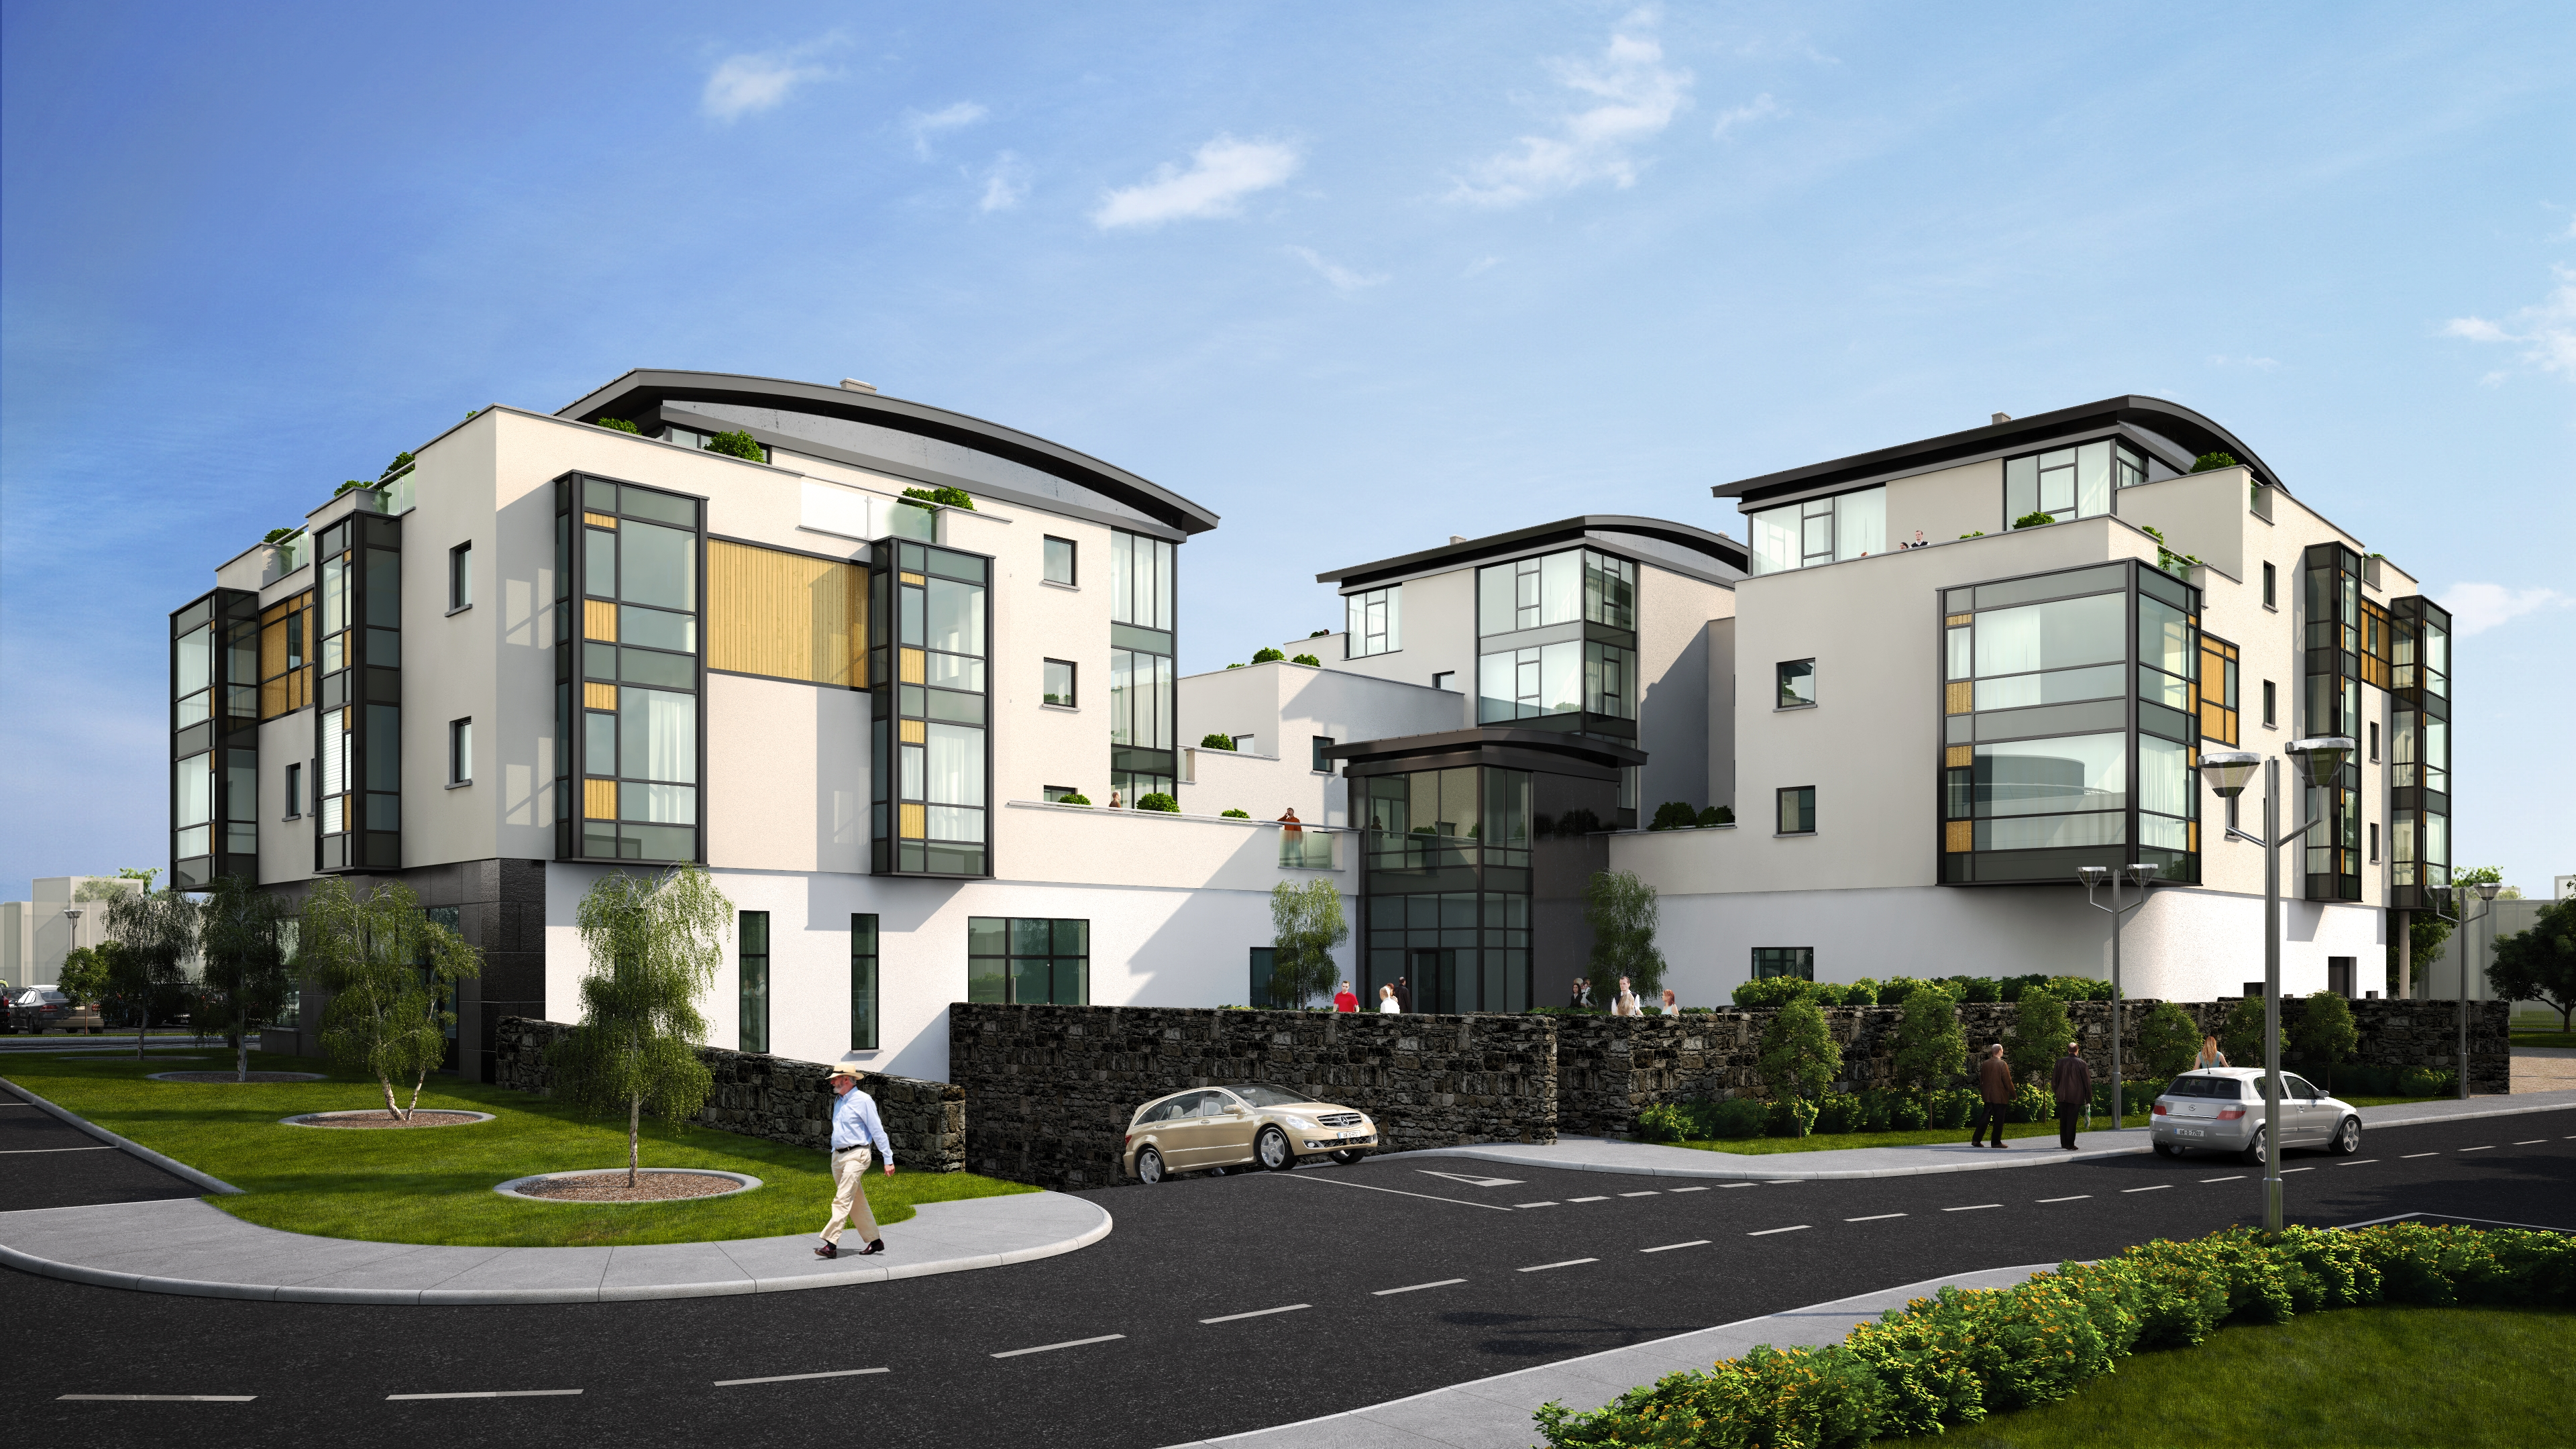 Commercial engineering wexford wfc retail units project for Retail apartment plans